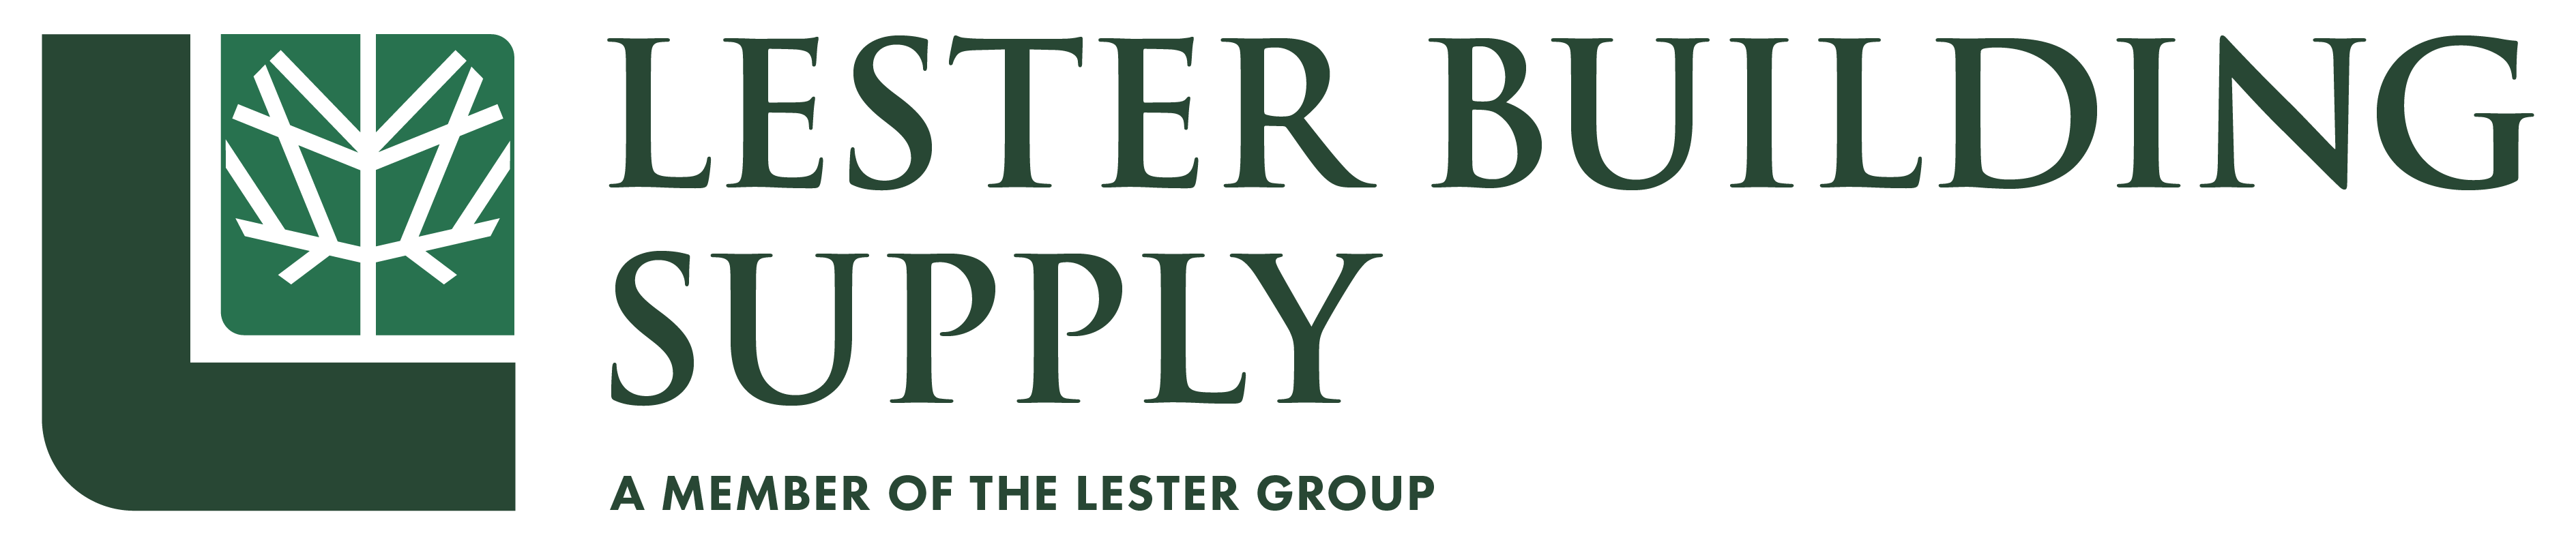 Lester Building Supply